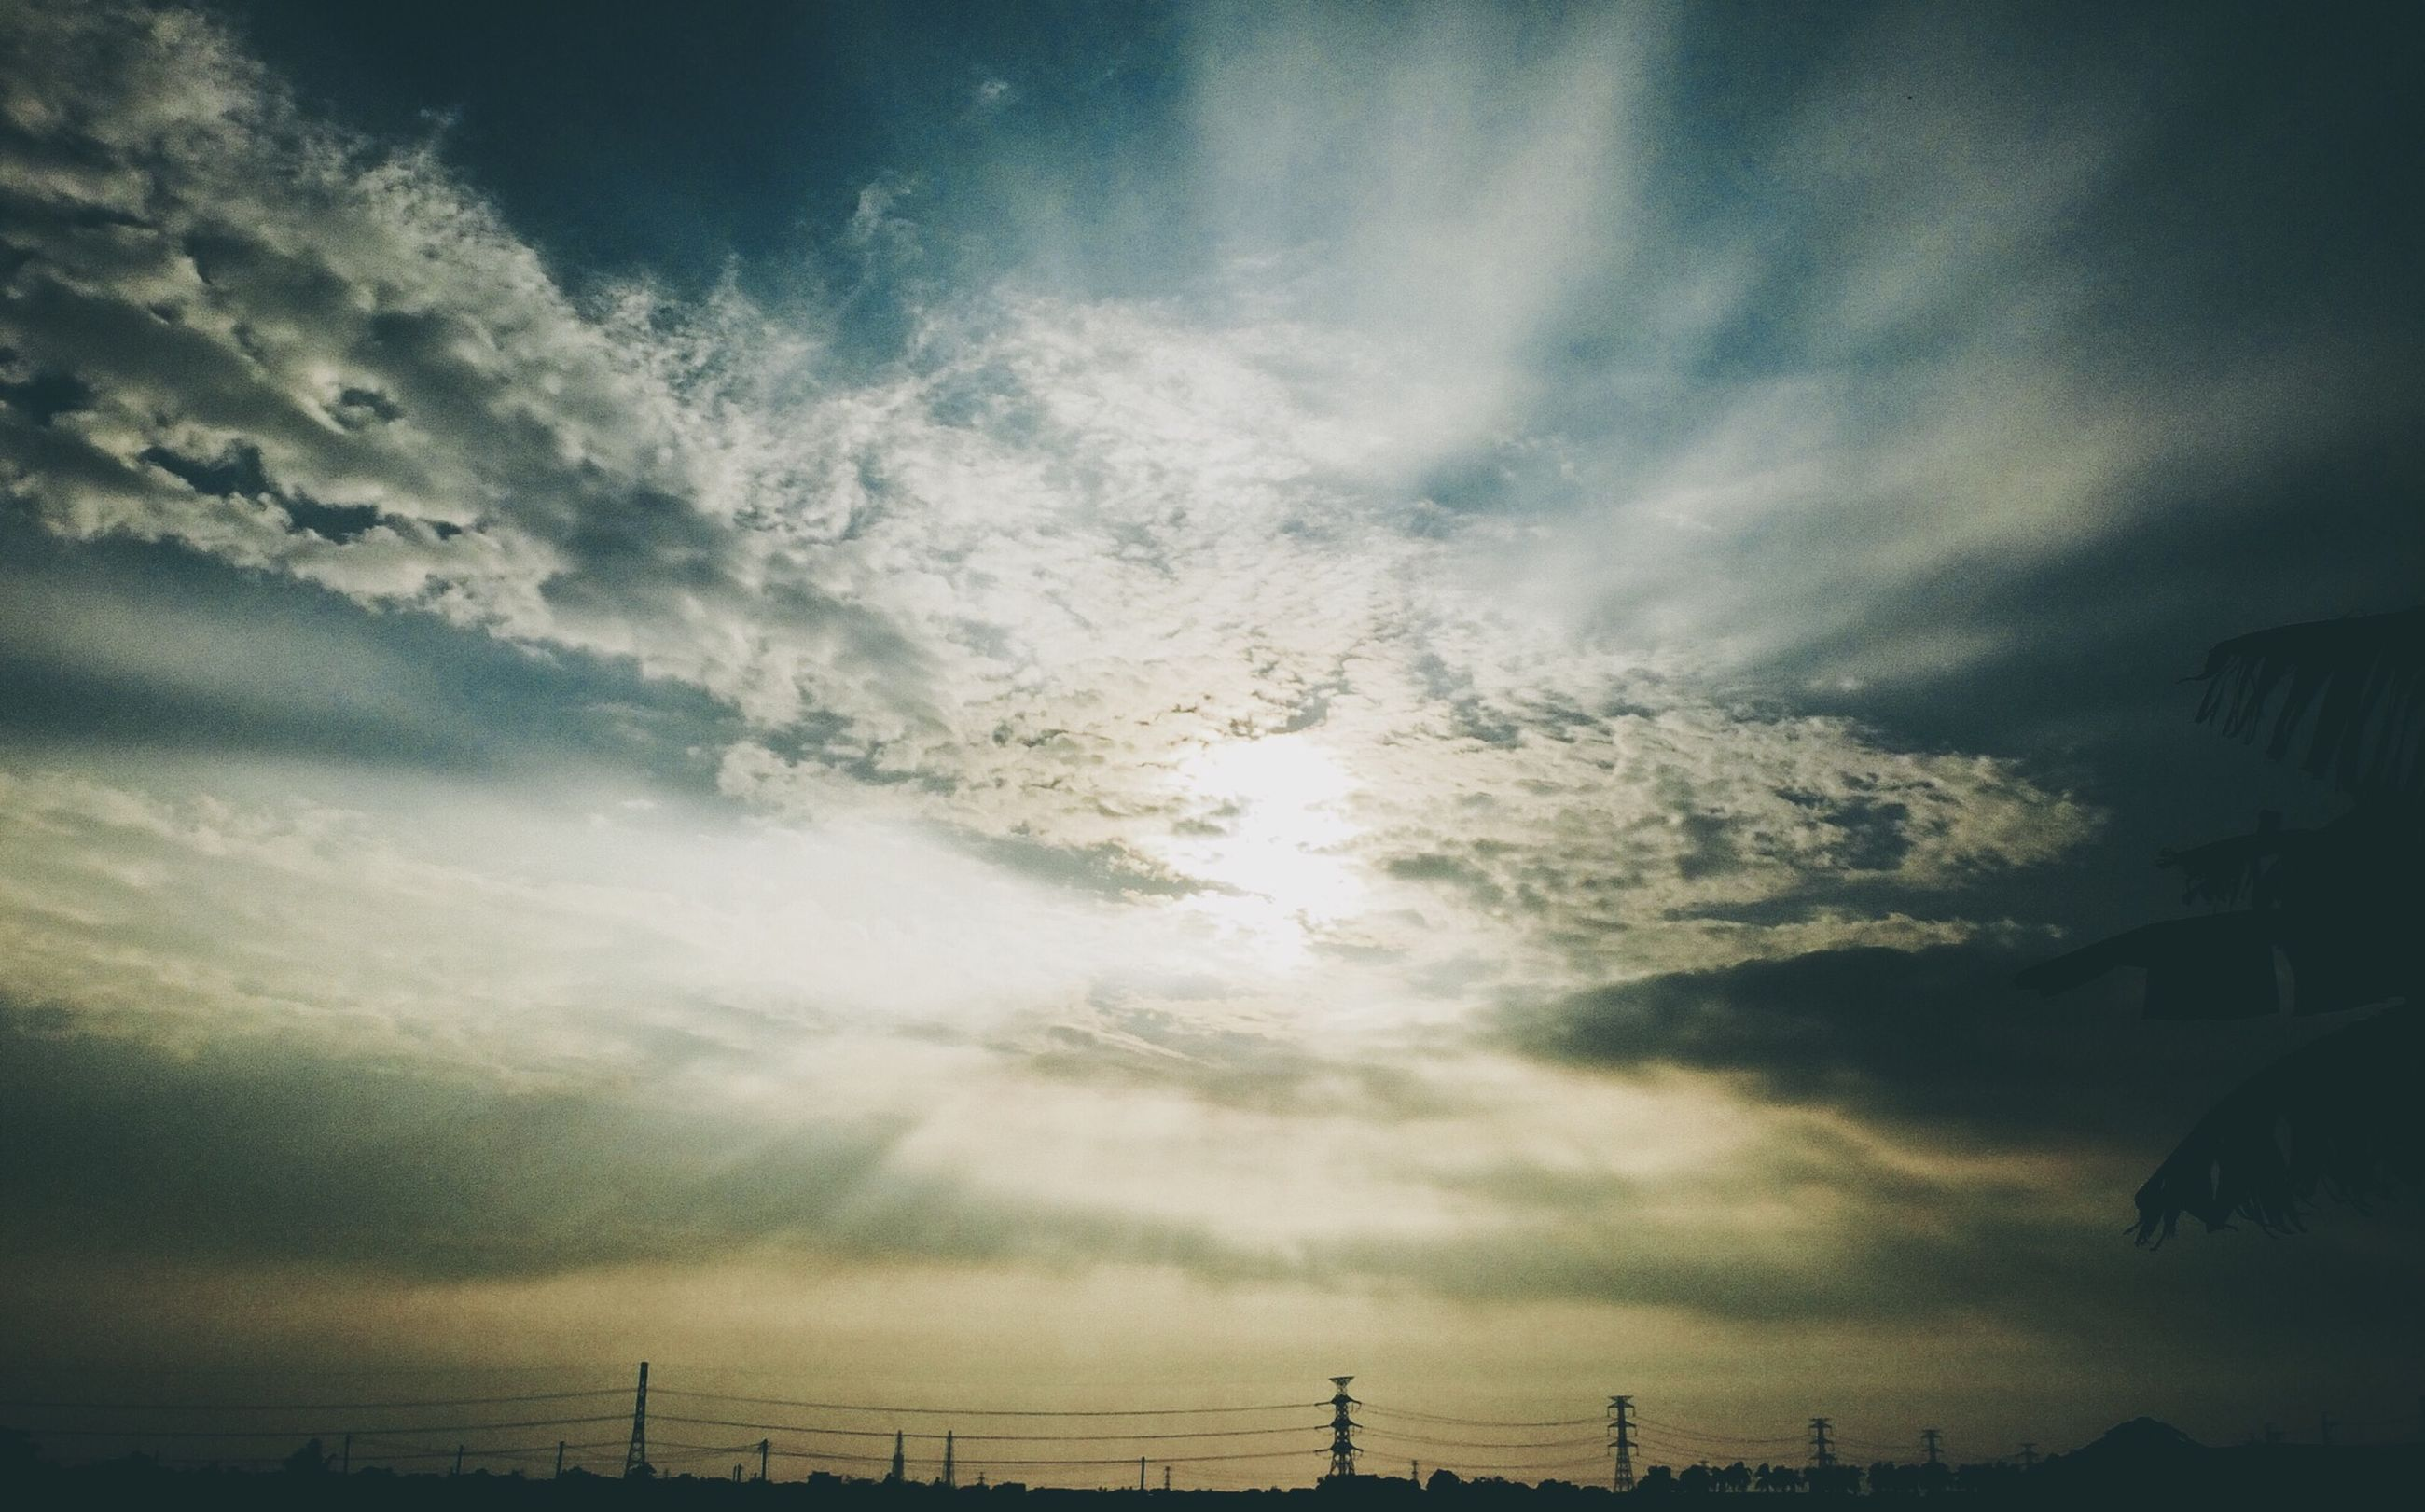 sky, cloud - sky, low angle view, cloudy, silhouette, weather, overcast, tranquility, nature, electricity pylon, beauty in nature, cloud, power line, fuel and power generation, electricity, dusk, scenics, tranquil scene, storm cloud, outdoors